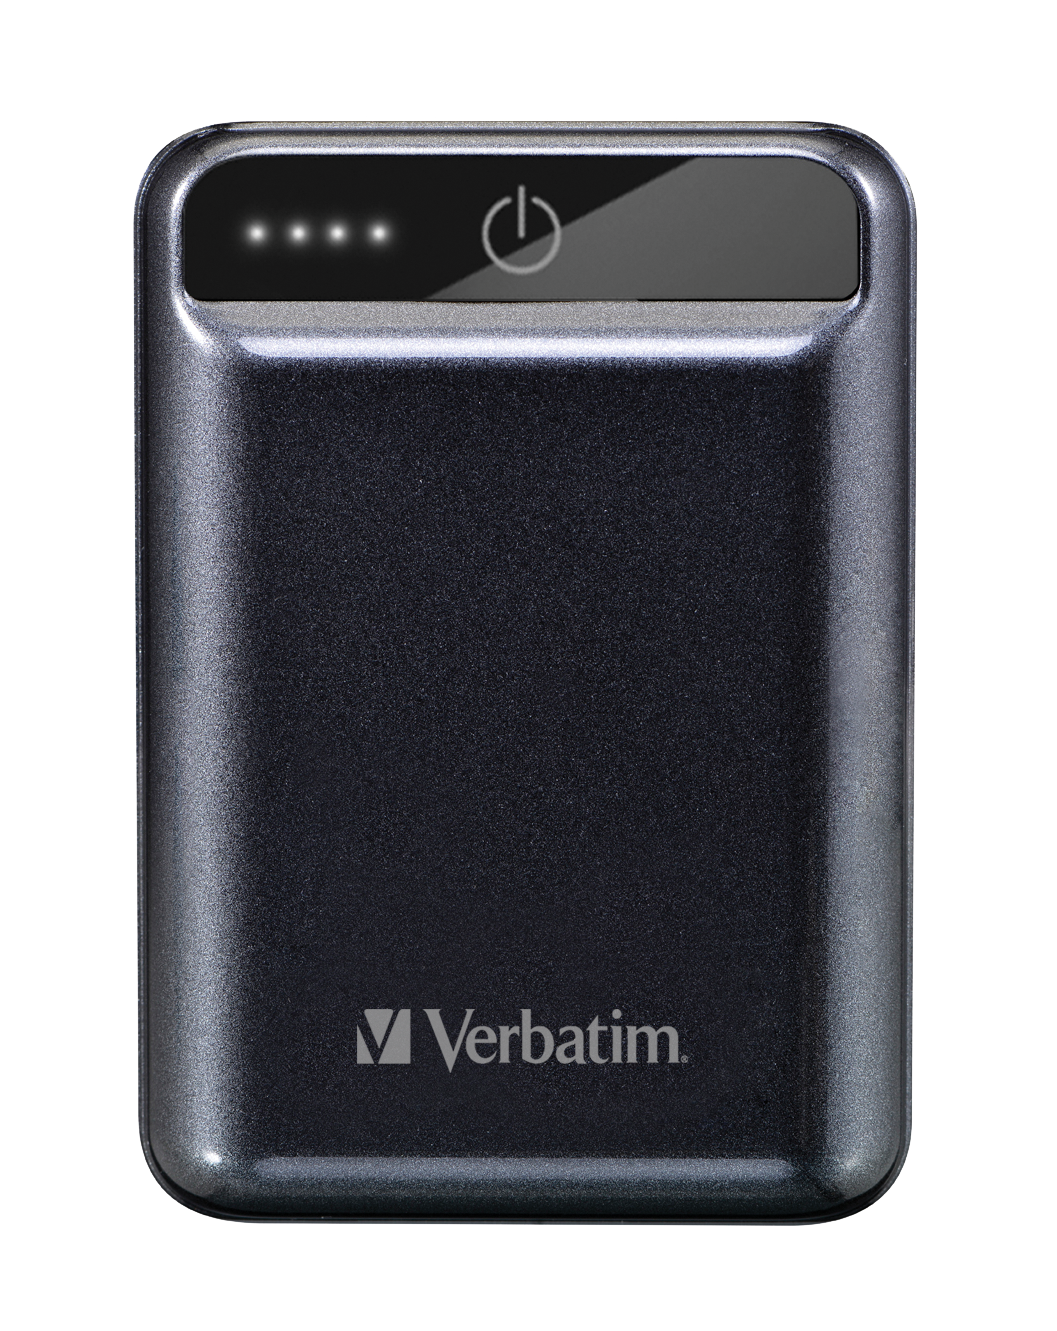 Verbatim Pocket Power Pack  10,000 mAh - GRAPHITE